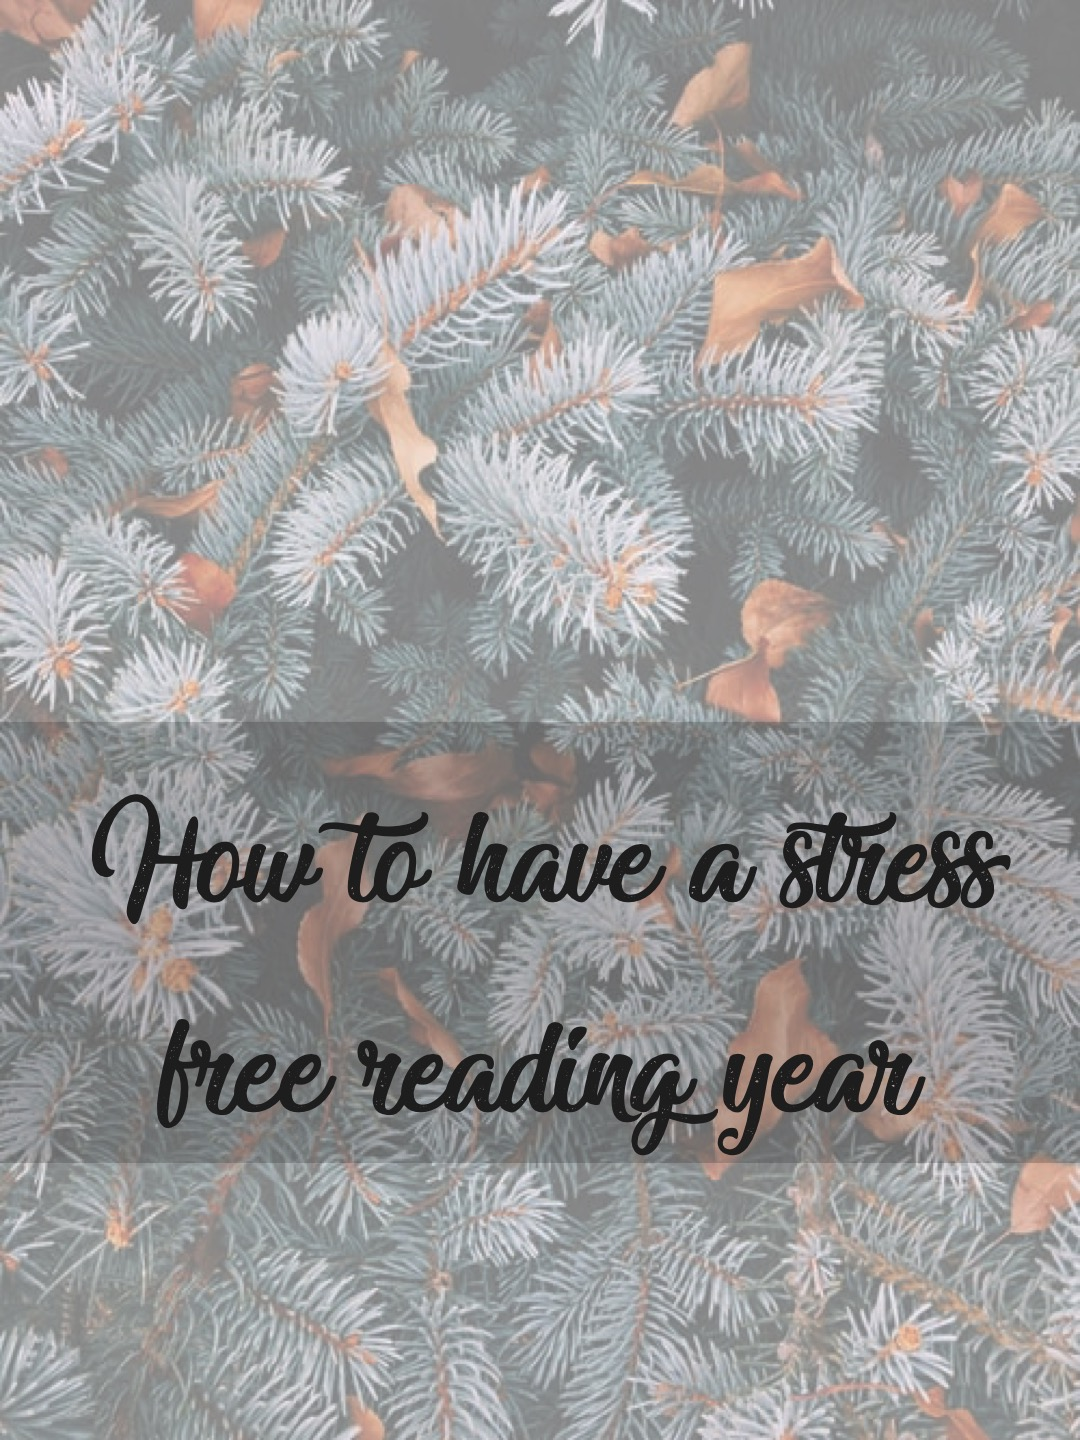 How to have a stress free reading year